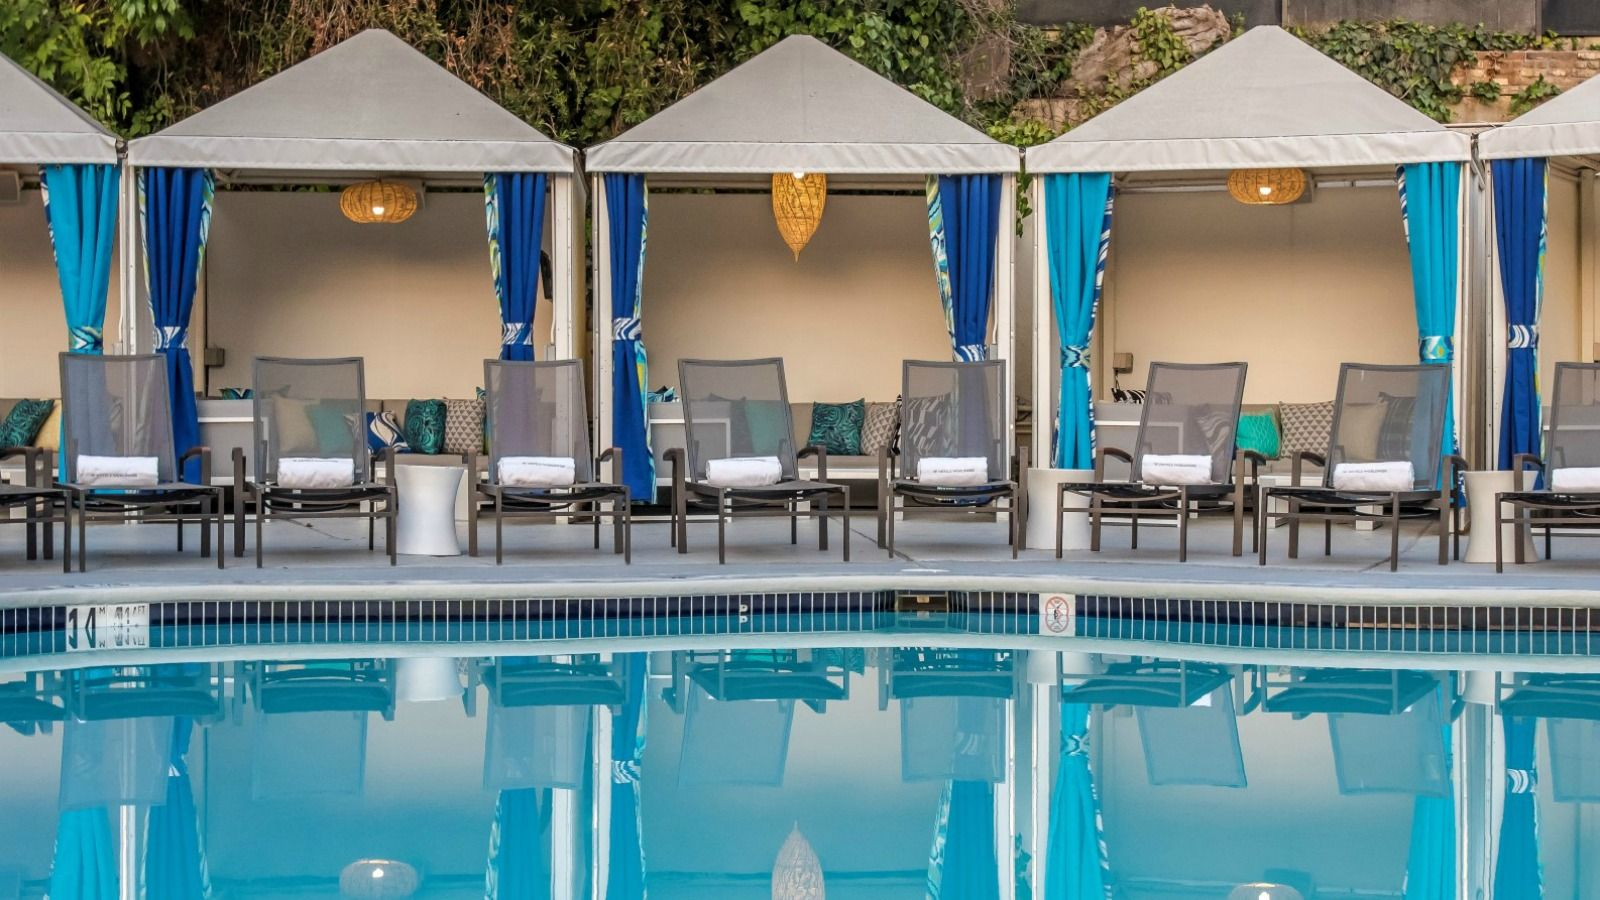 W Los Angeles - West Beverly Hills - Hotel Features